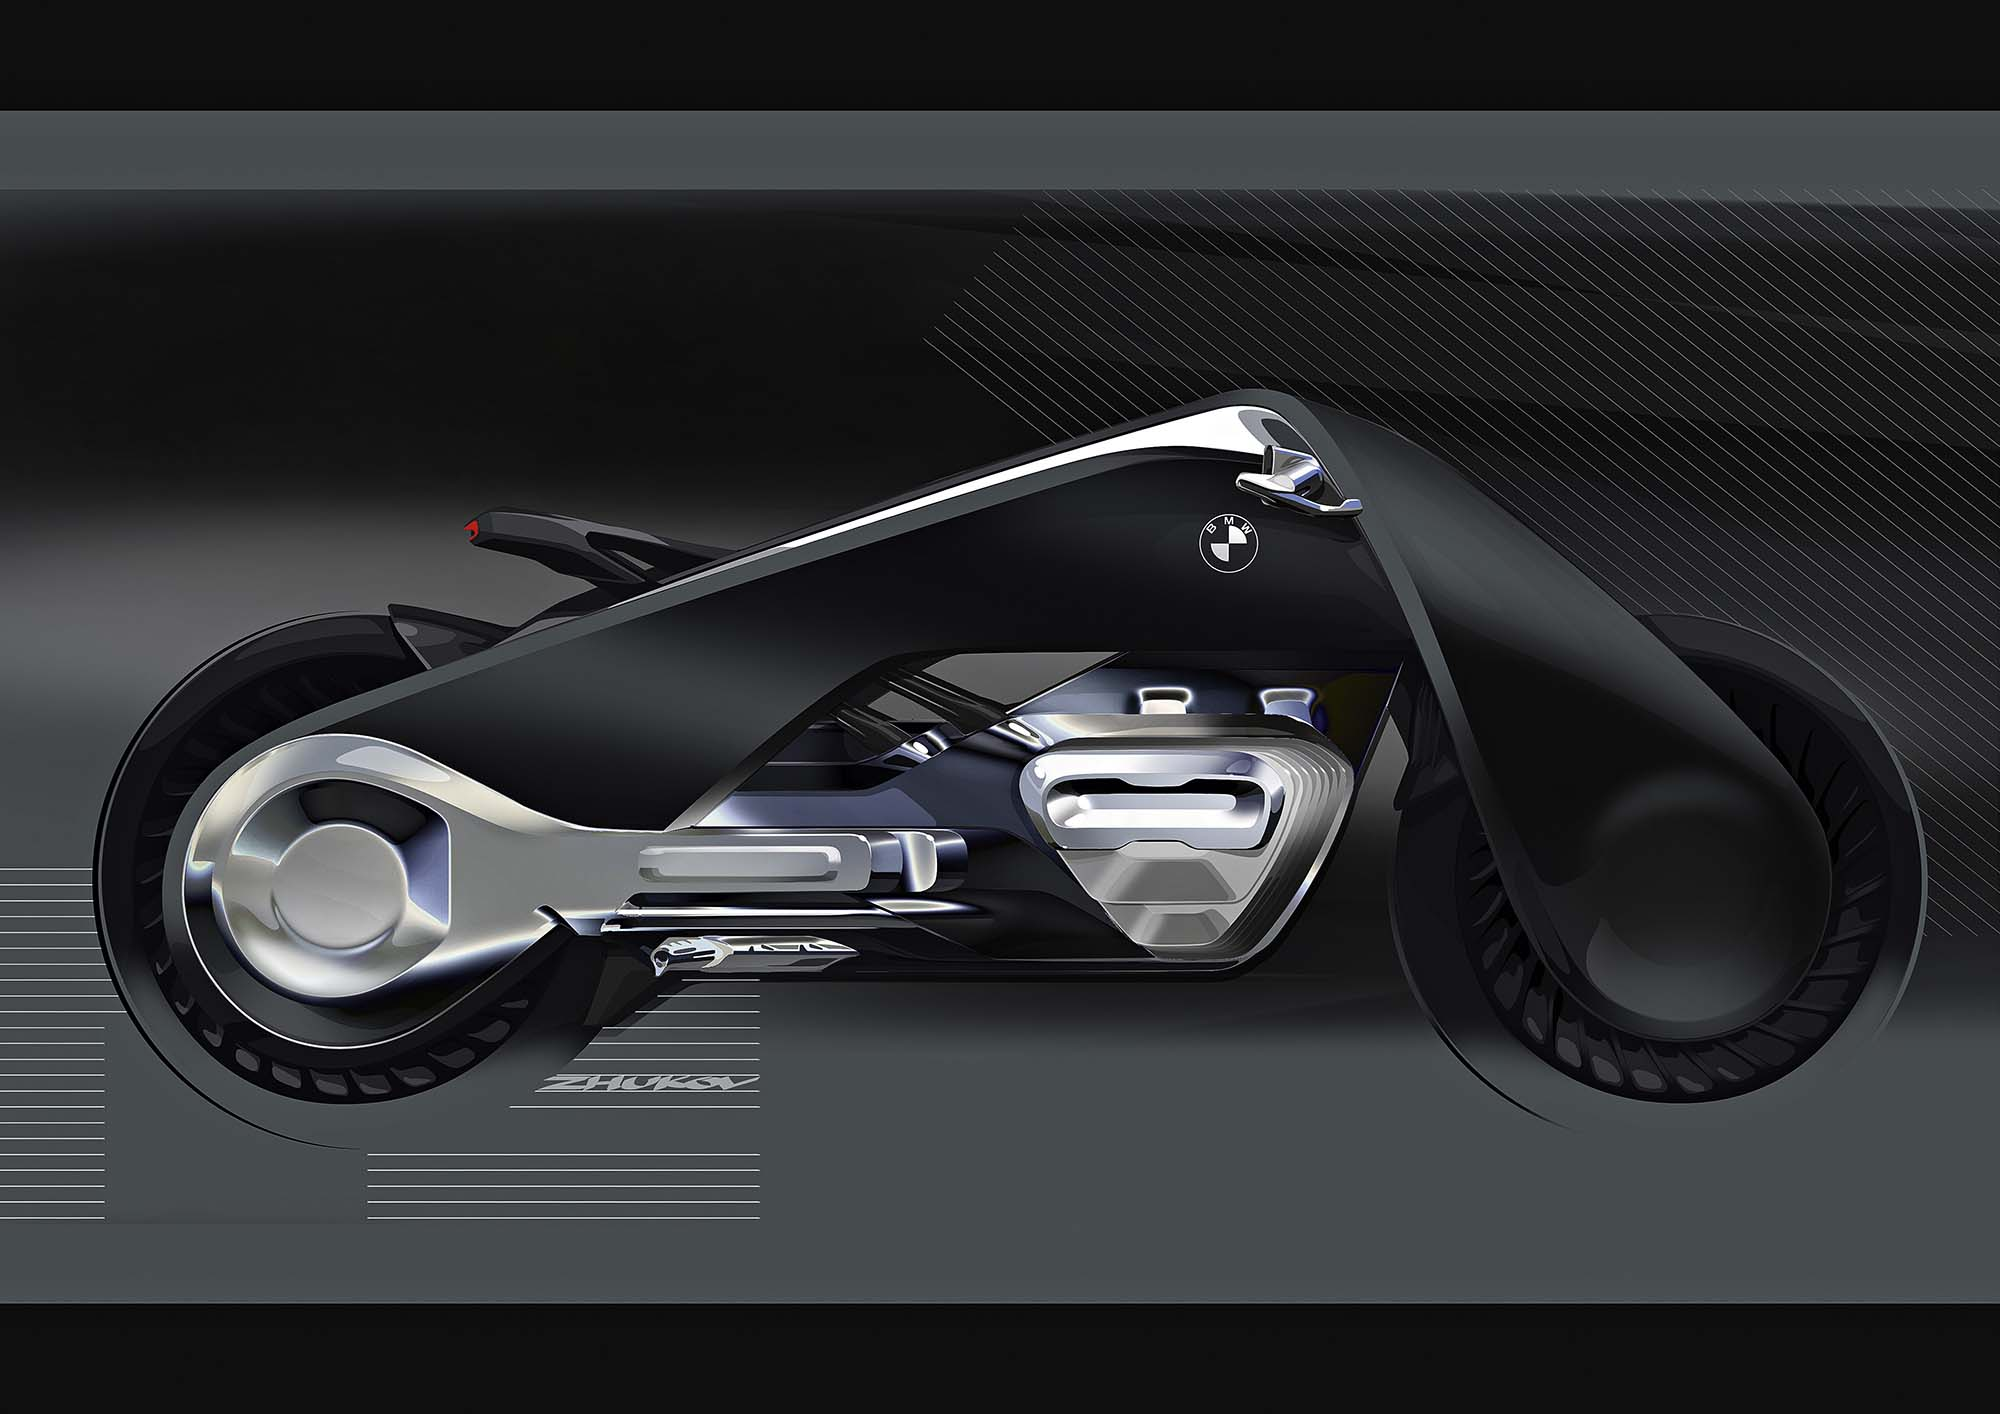 bmw vision next 100 concept is the future of motorcycles. Black Bedroom Furniture Sets. Home Design Ideas